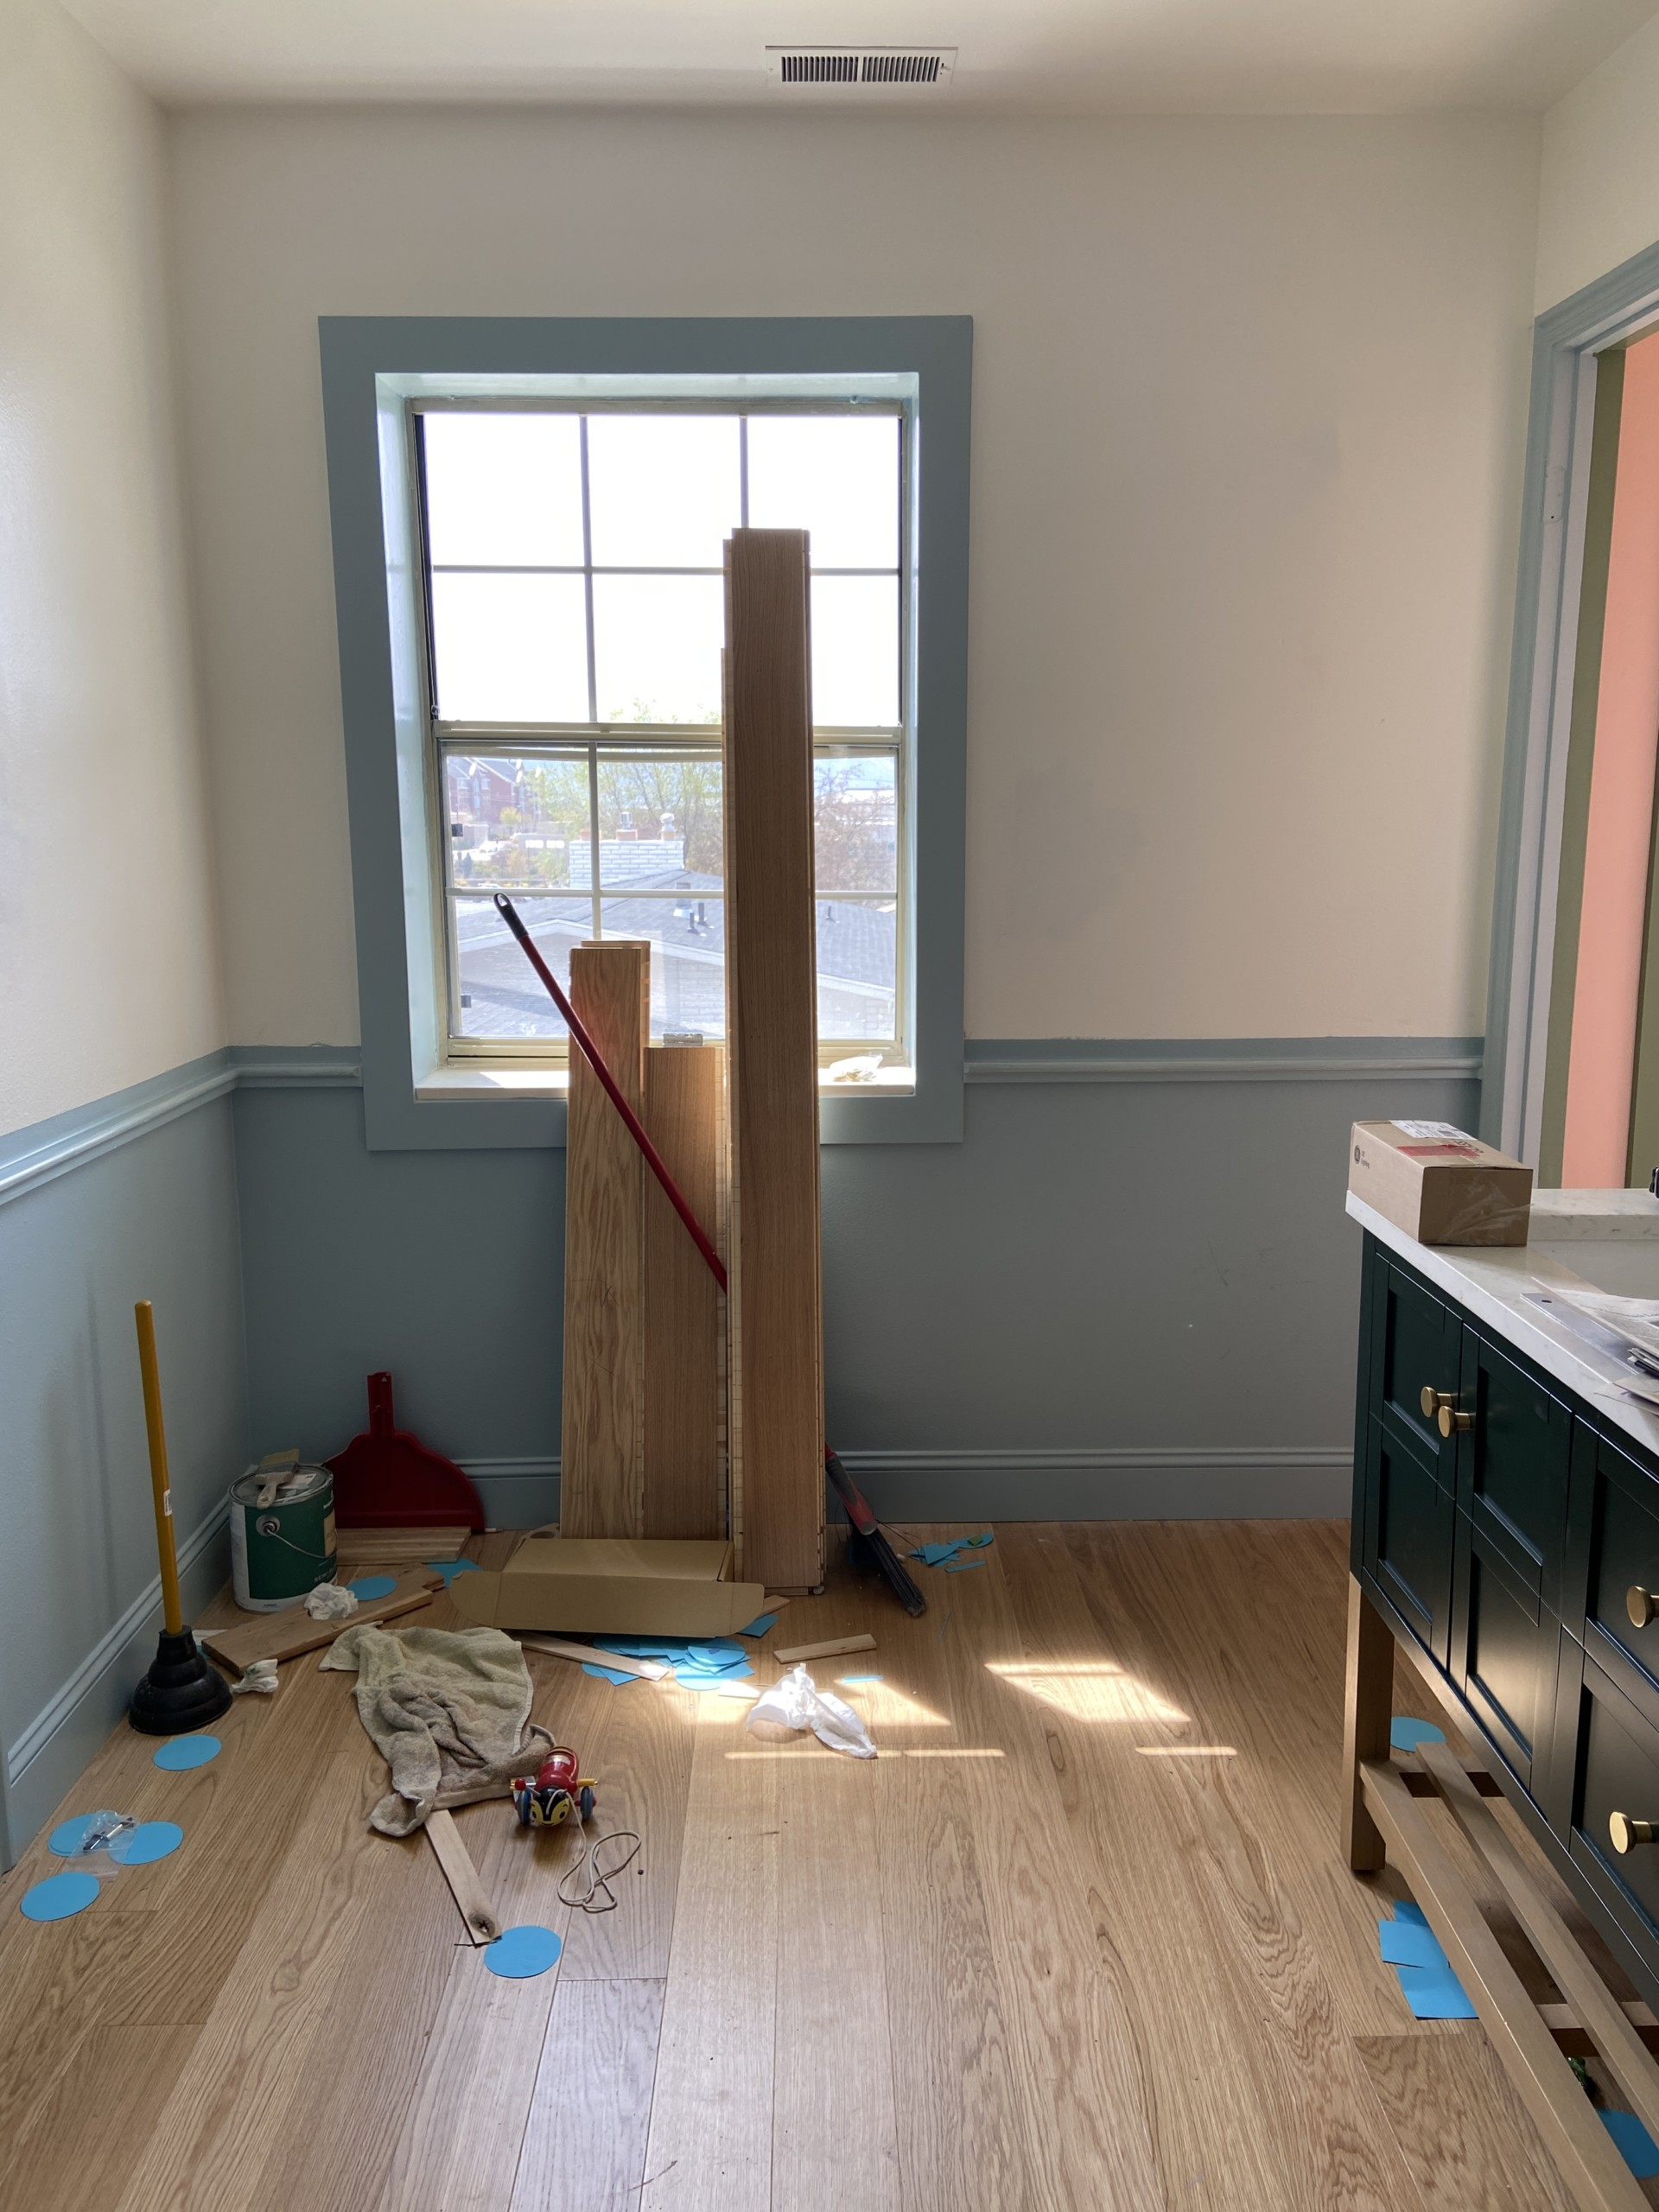 Interior shot of a bathroom with wooden floors and blue and white walls. There's blue-painted trim at waist-height around the room, and some boards and materials are cluttered in the corner and under a window.